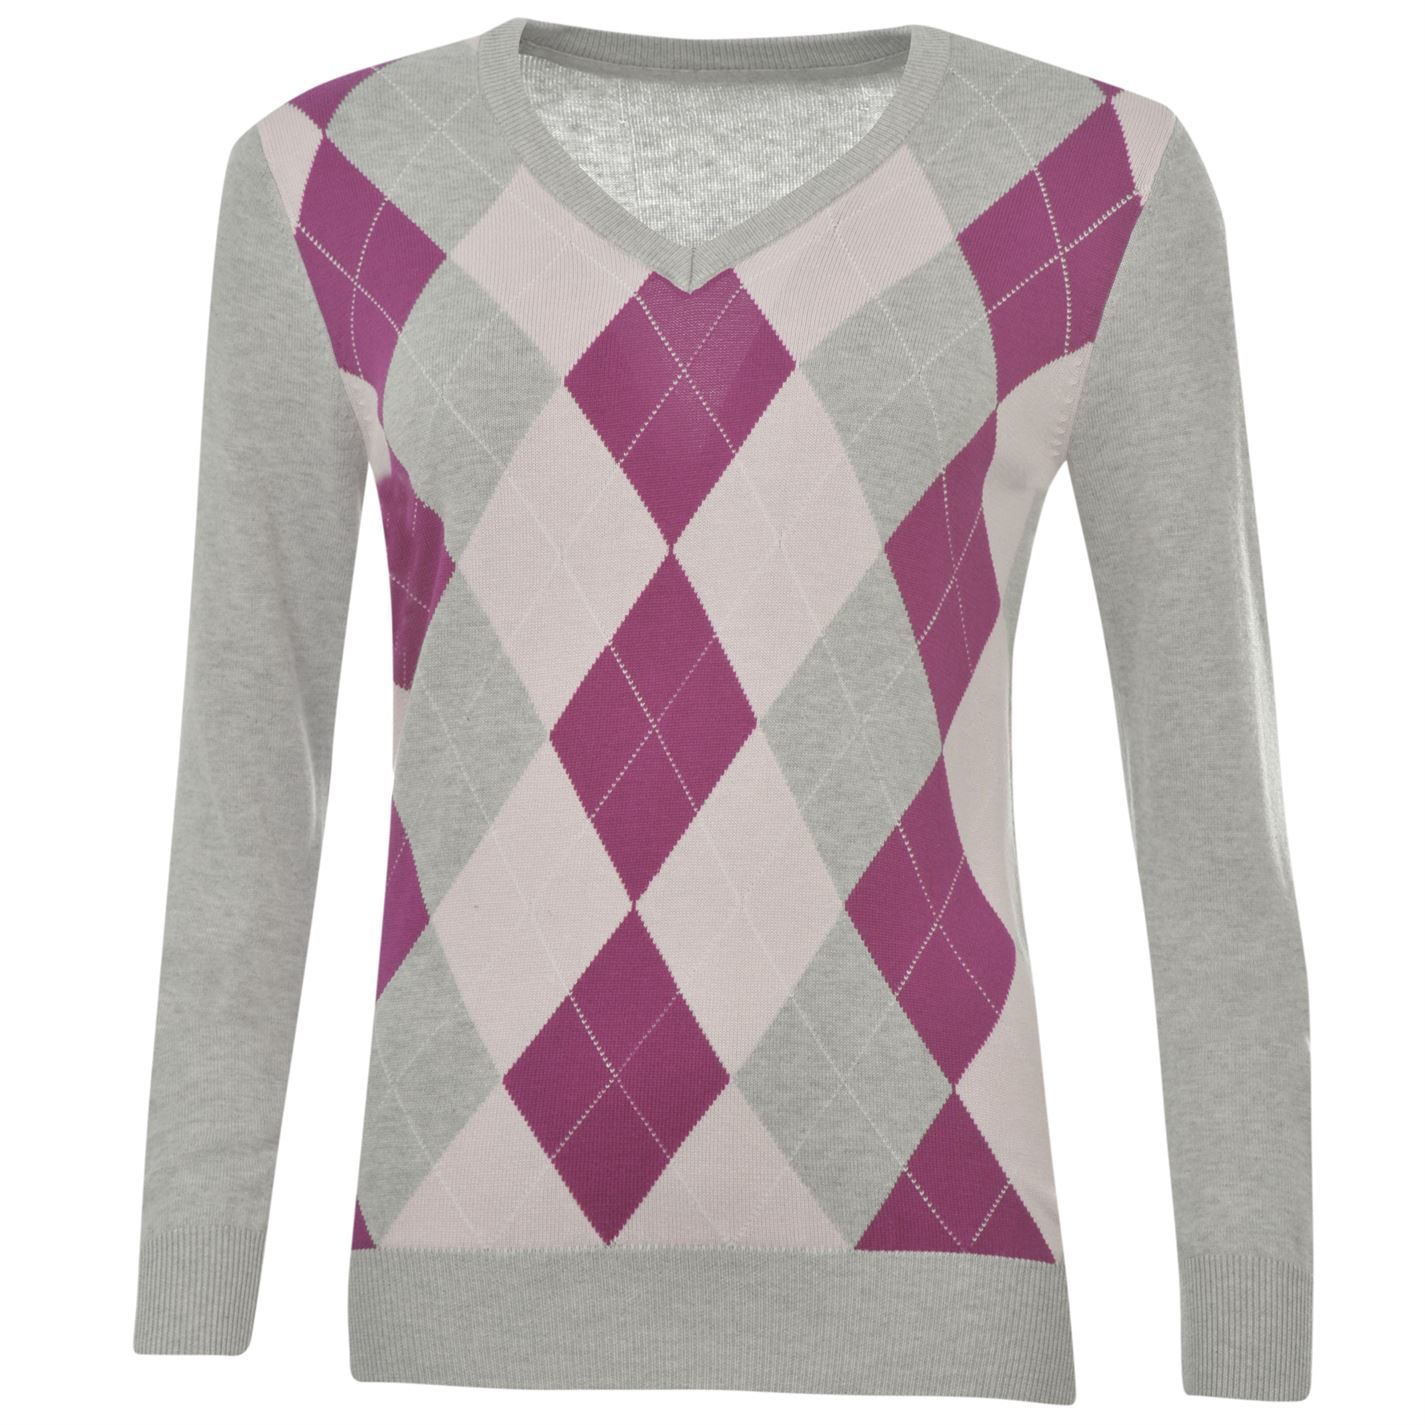 Slazenger | Slazenger Argyle Golf Sweater Ladies | Ladies Sweaters ...